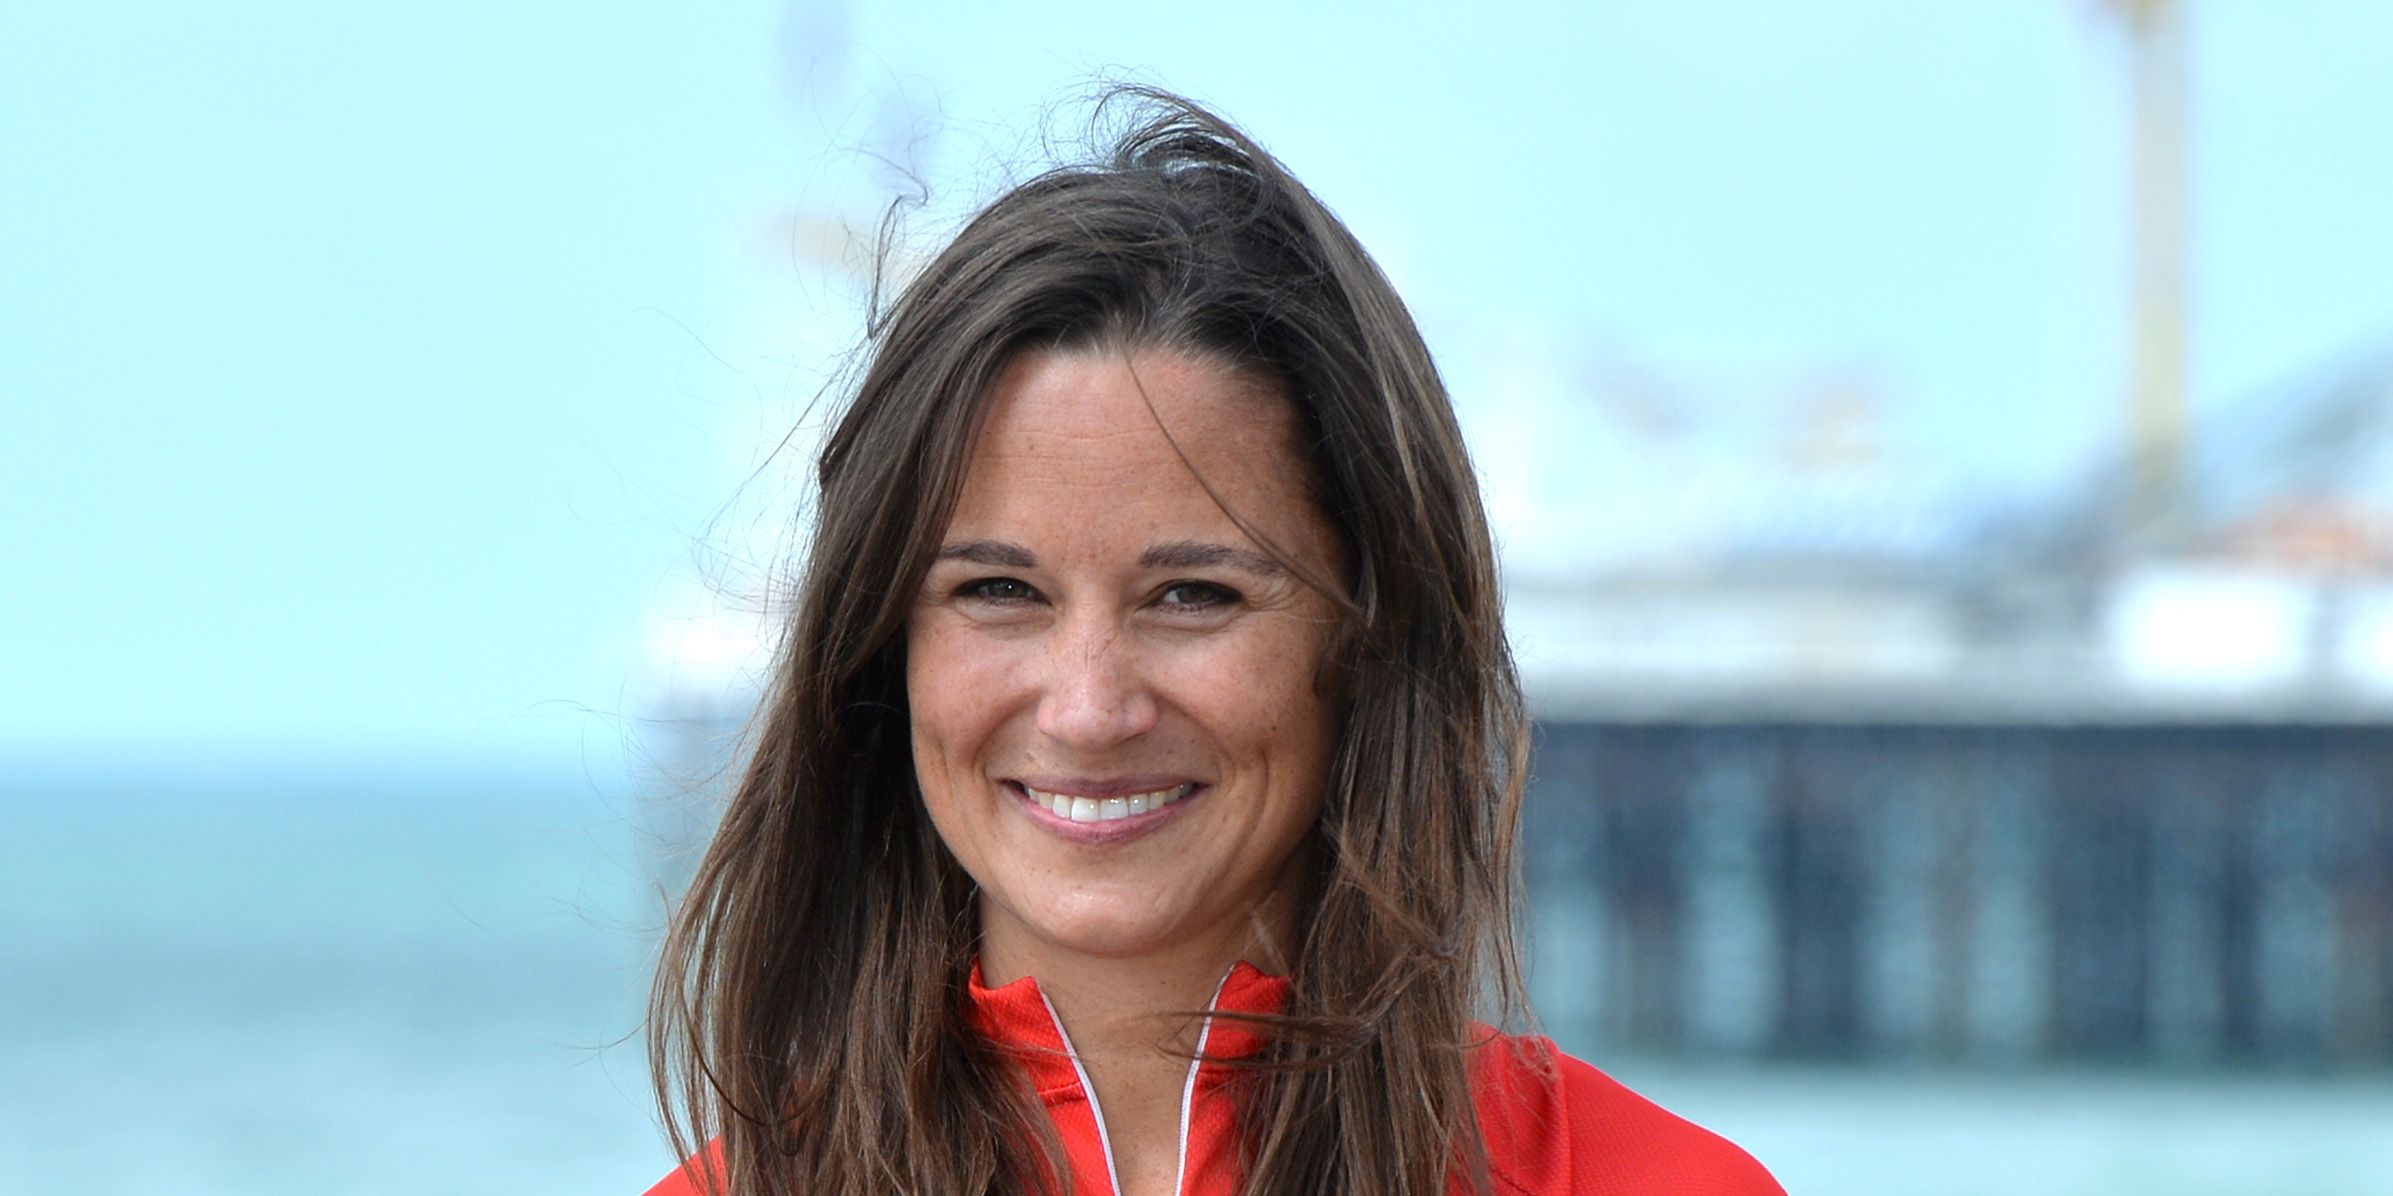 Could Pippa Middleton's pre-wedding diet be dangerous?